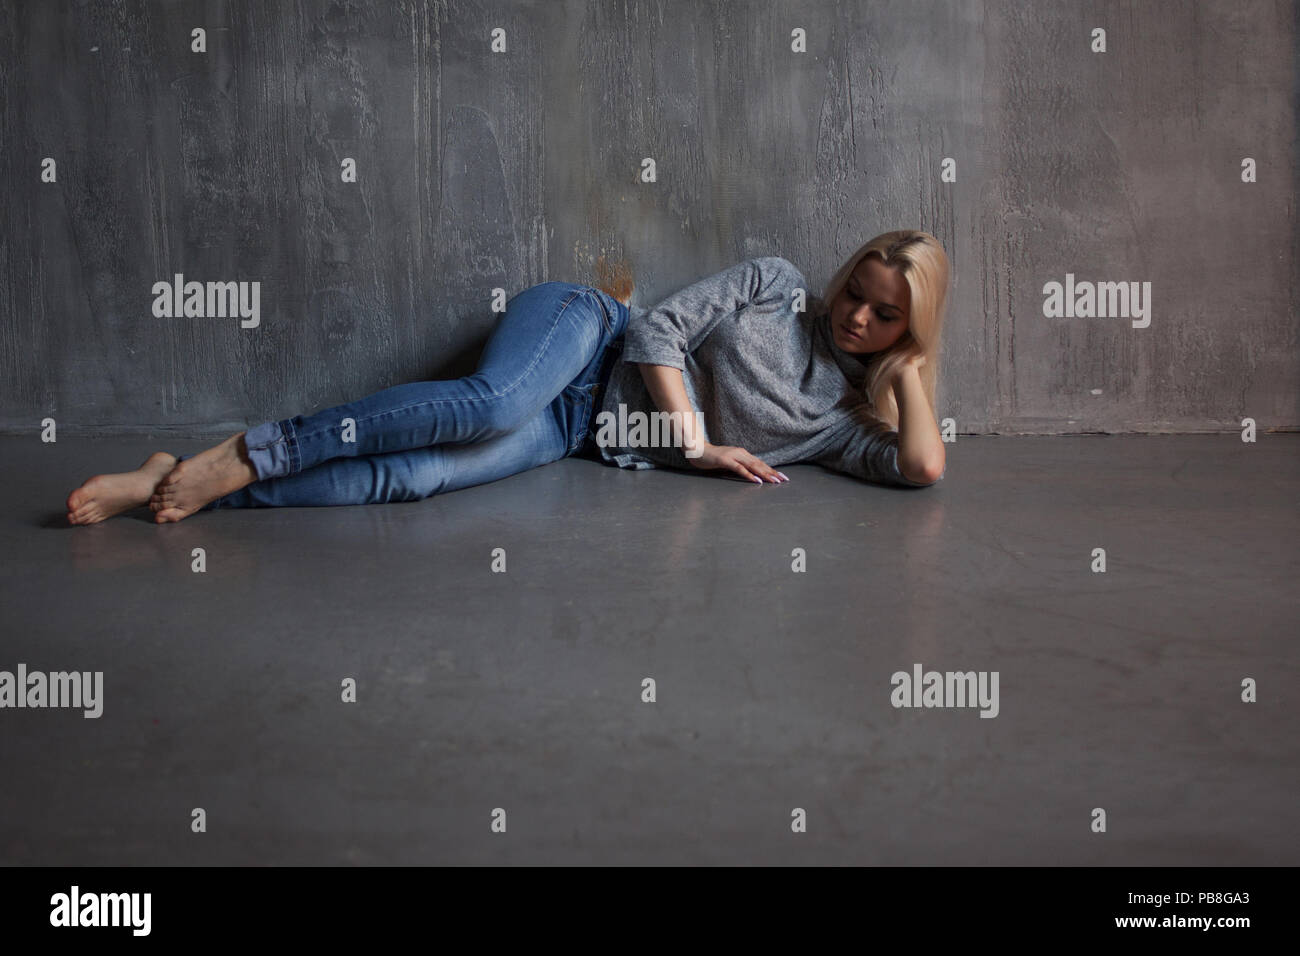 Depression. Young woman lying on the floor, concept of stress or post-traumatic disorder - Stock Image